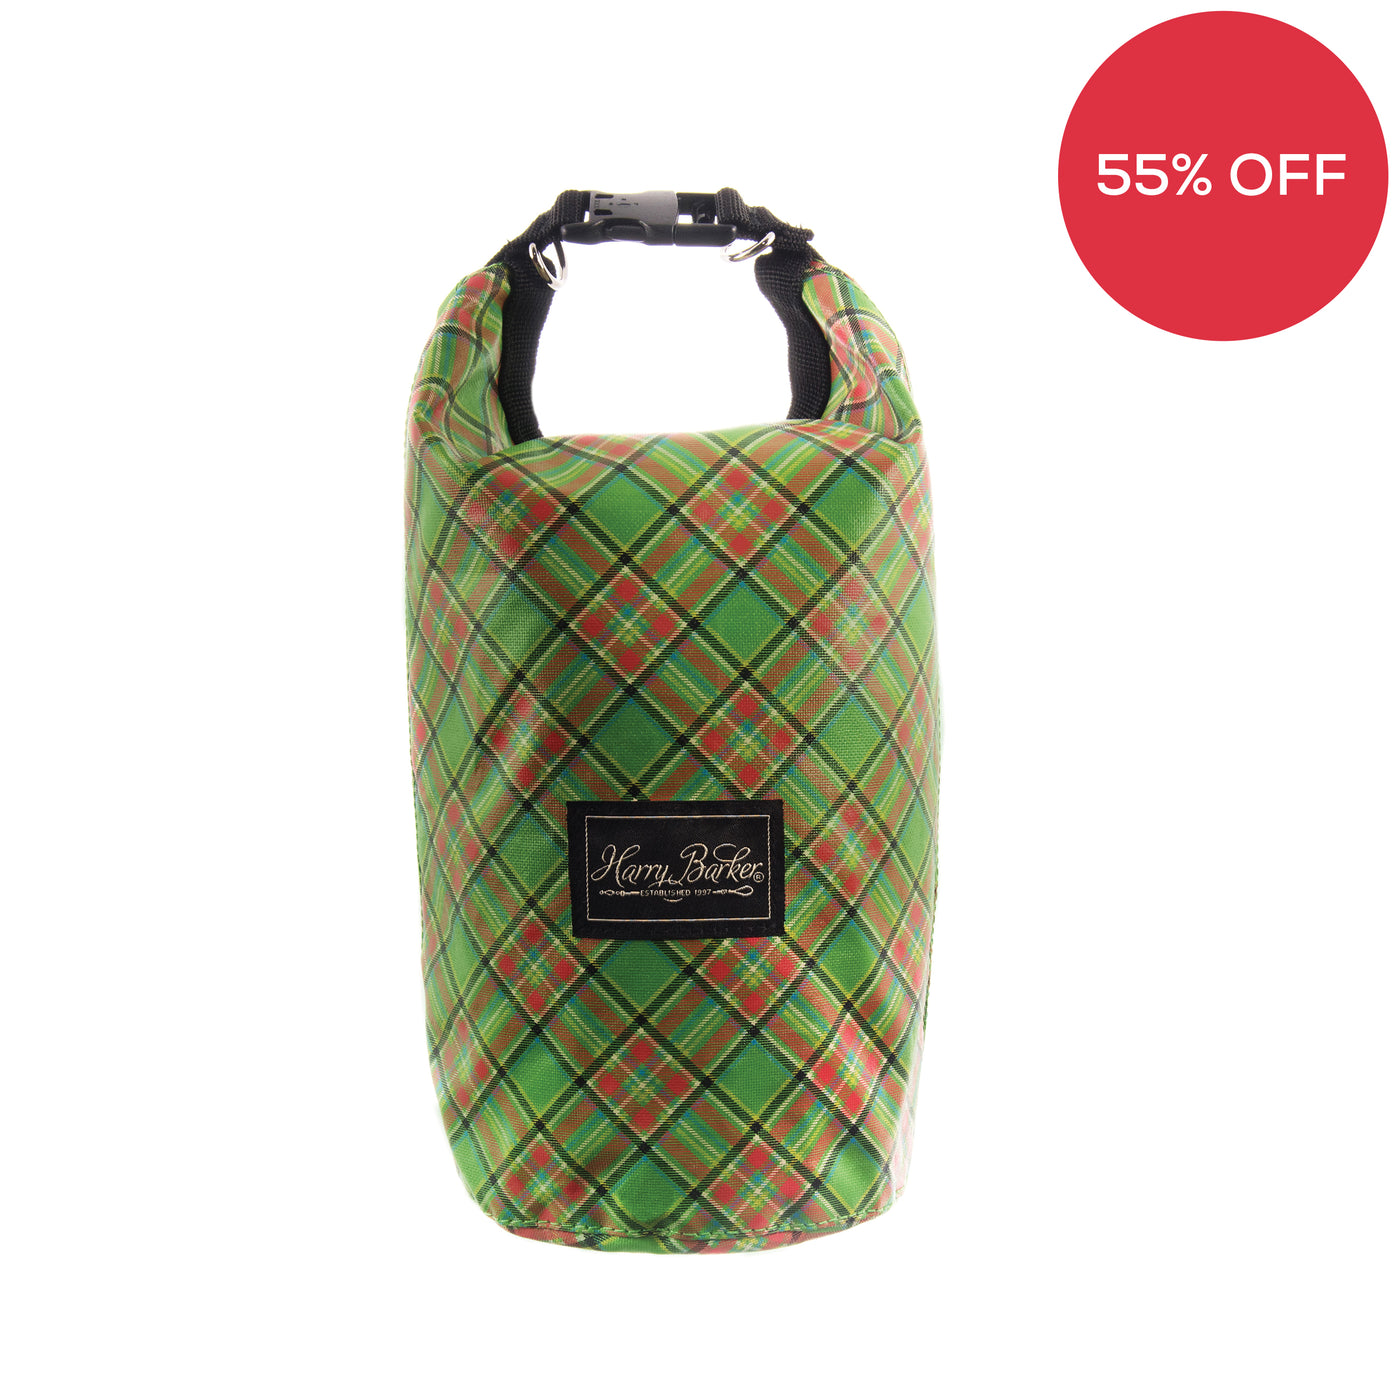 Tartan Travel Food Storage Bag  sc 1 st  Mission Pets & Buy Tartan Travel Food Storage Bag at Mission Pets for only $9.99